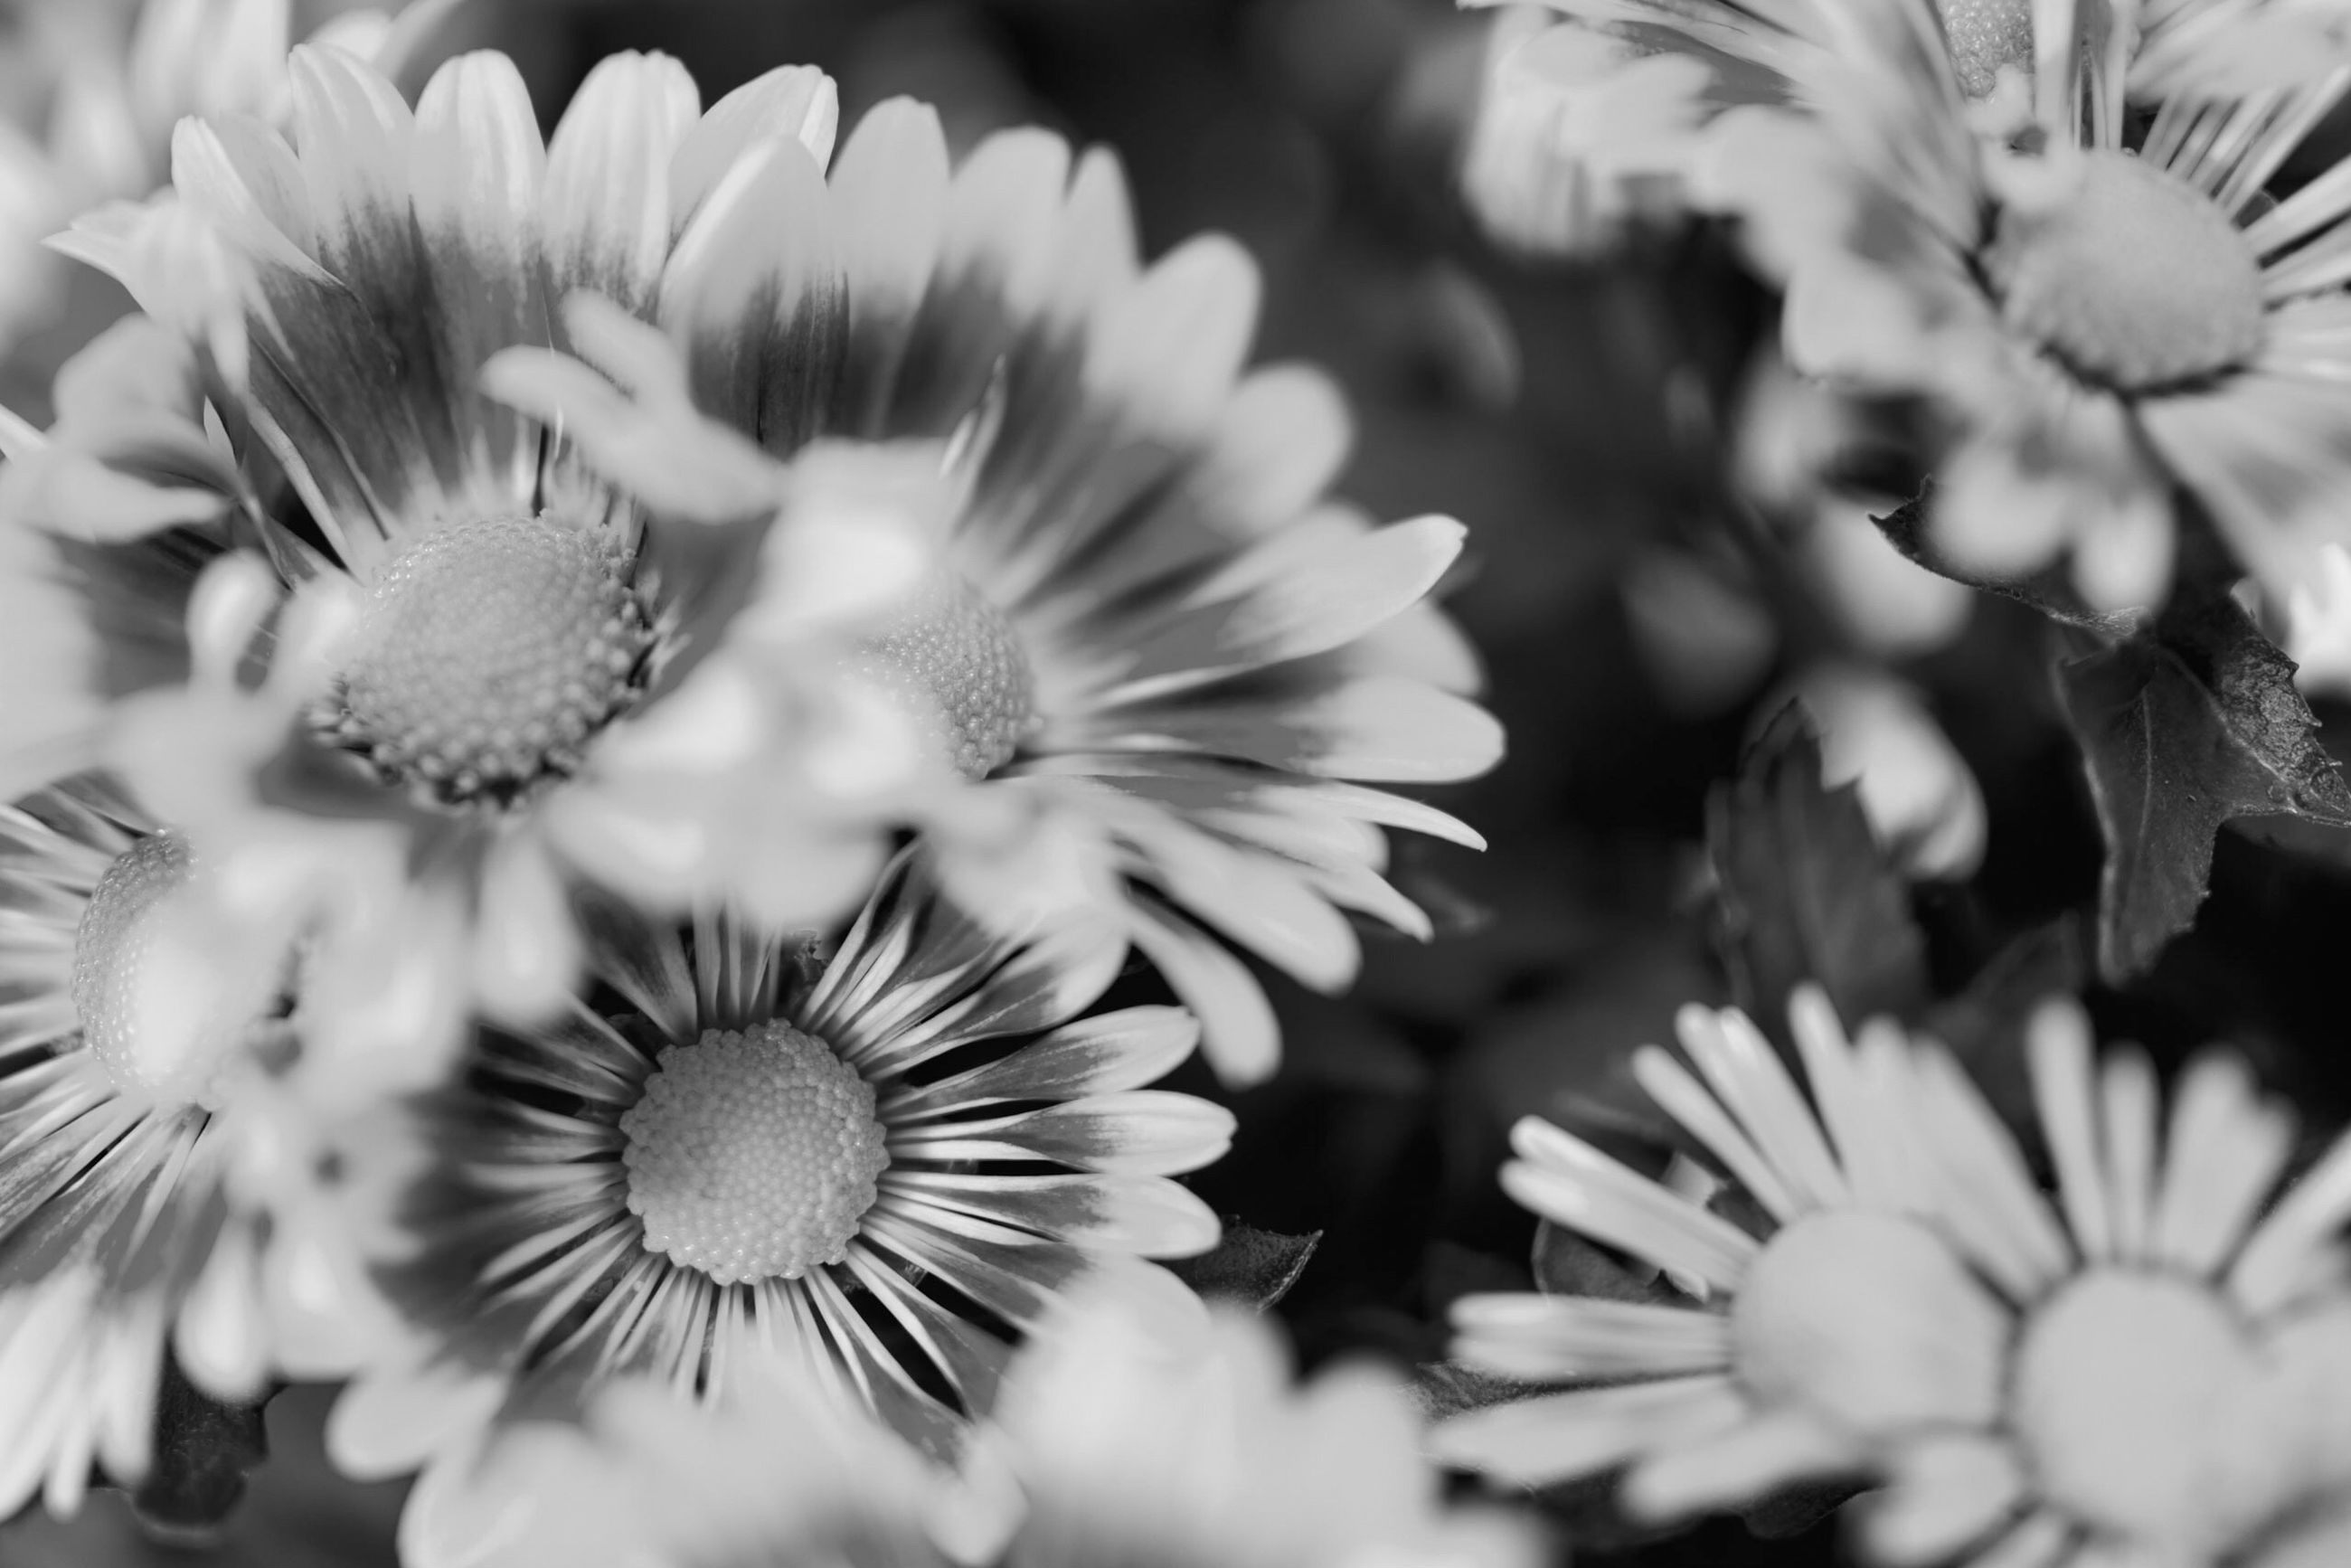 flower, fragility, growth, beauty in nature, nature, petal, freshness, flower head, plant, close-up, blooming, no people, day, outdoors